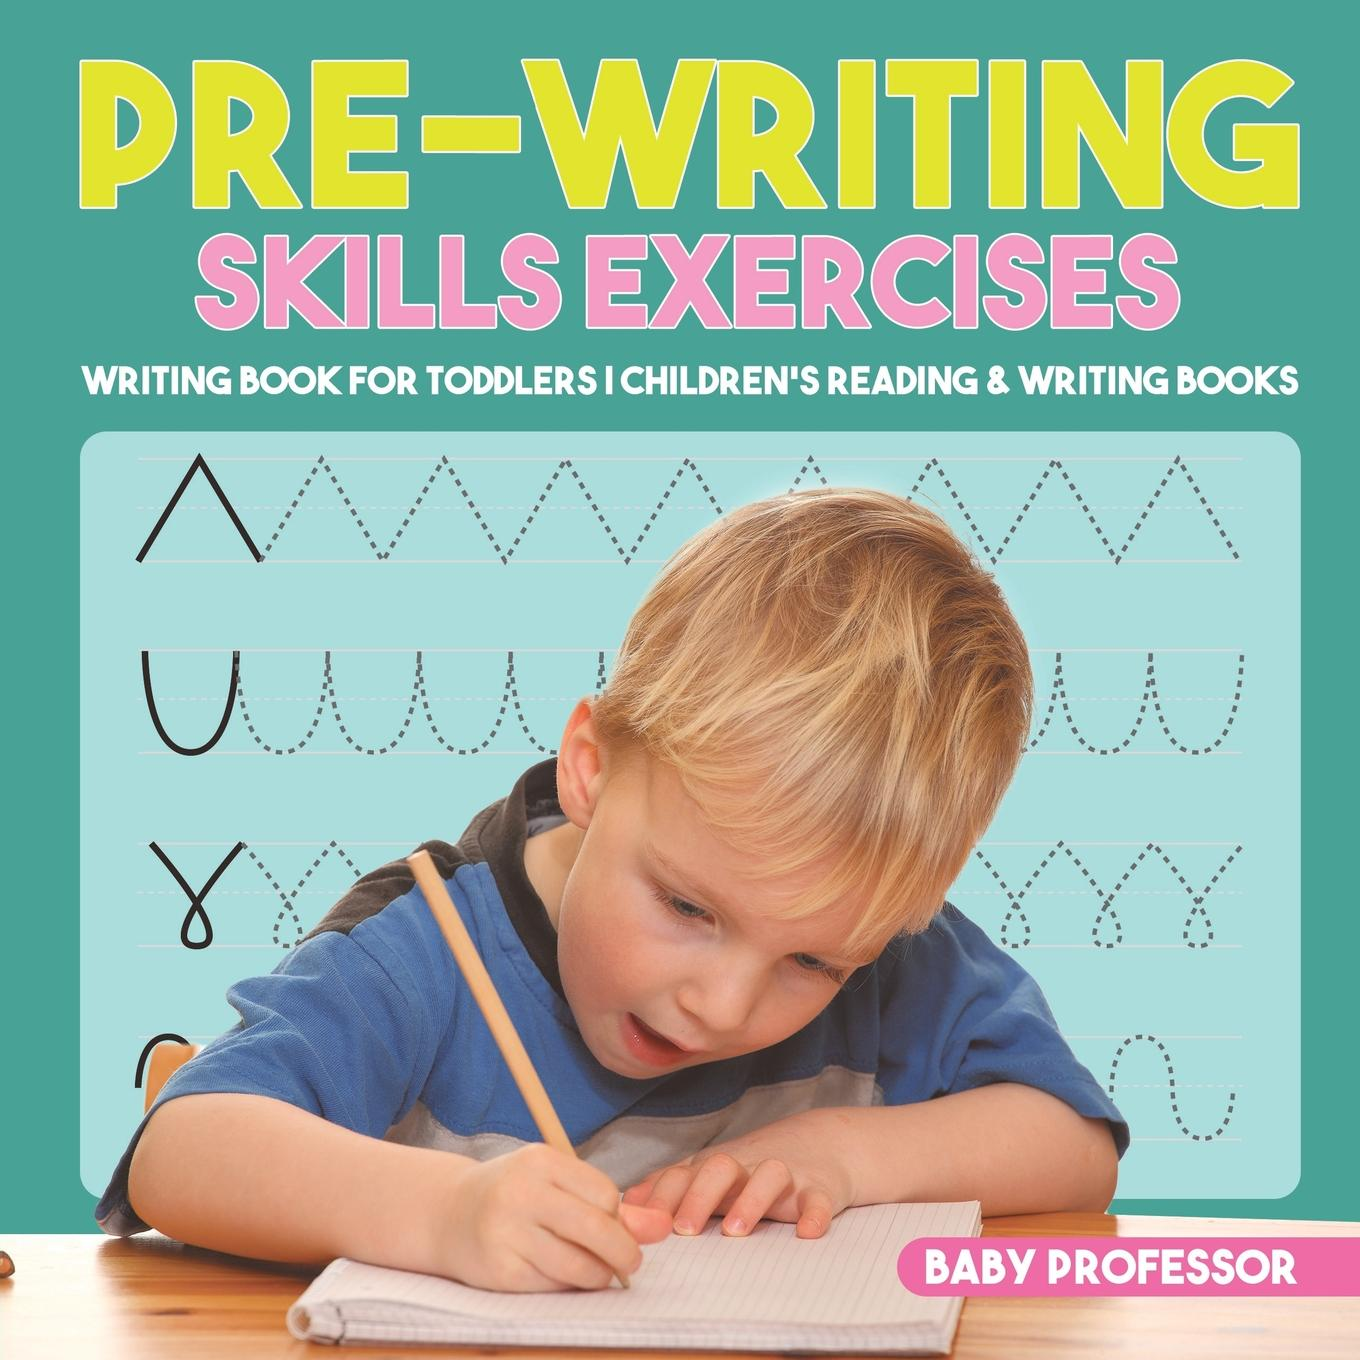 Pre-Writing Skills Exercises - Writing Book for Toddlers Children's Reading & Writing Books